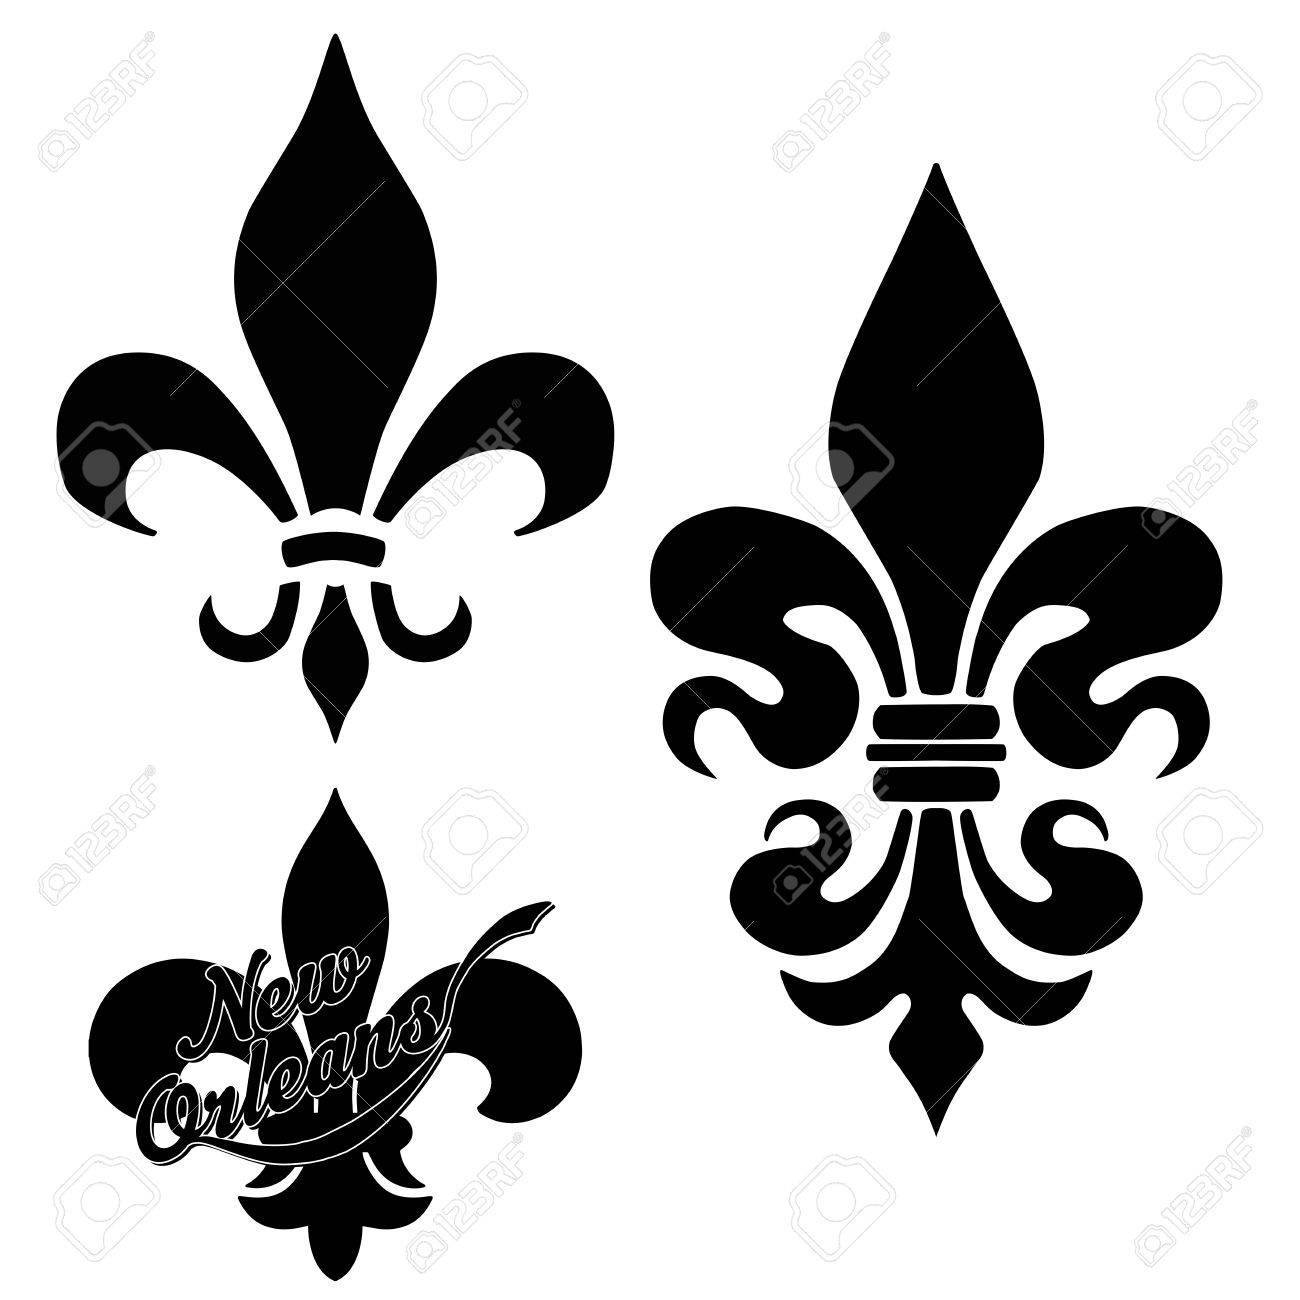 Wordart Collection Fleur De Lis Stock Photo Picture And Royalty